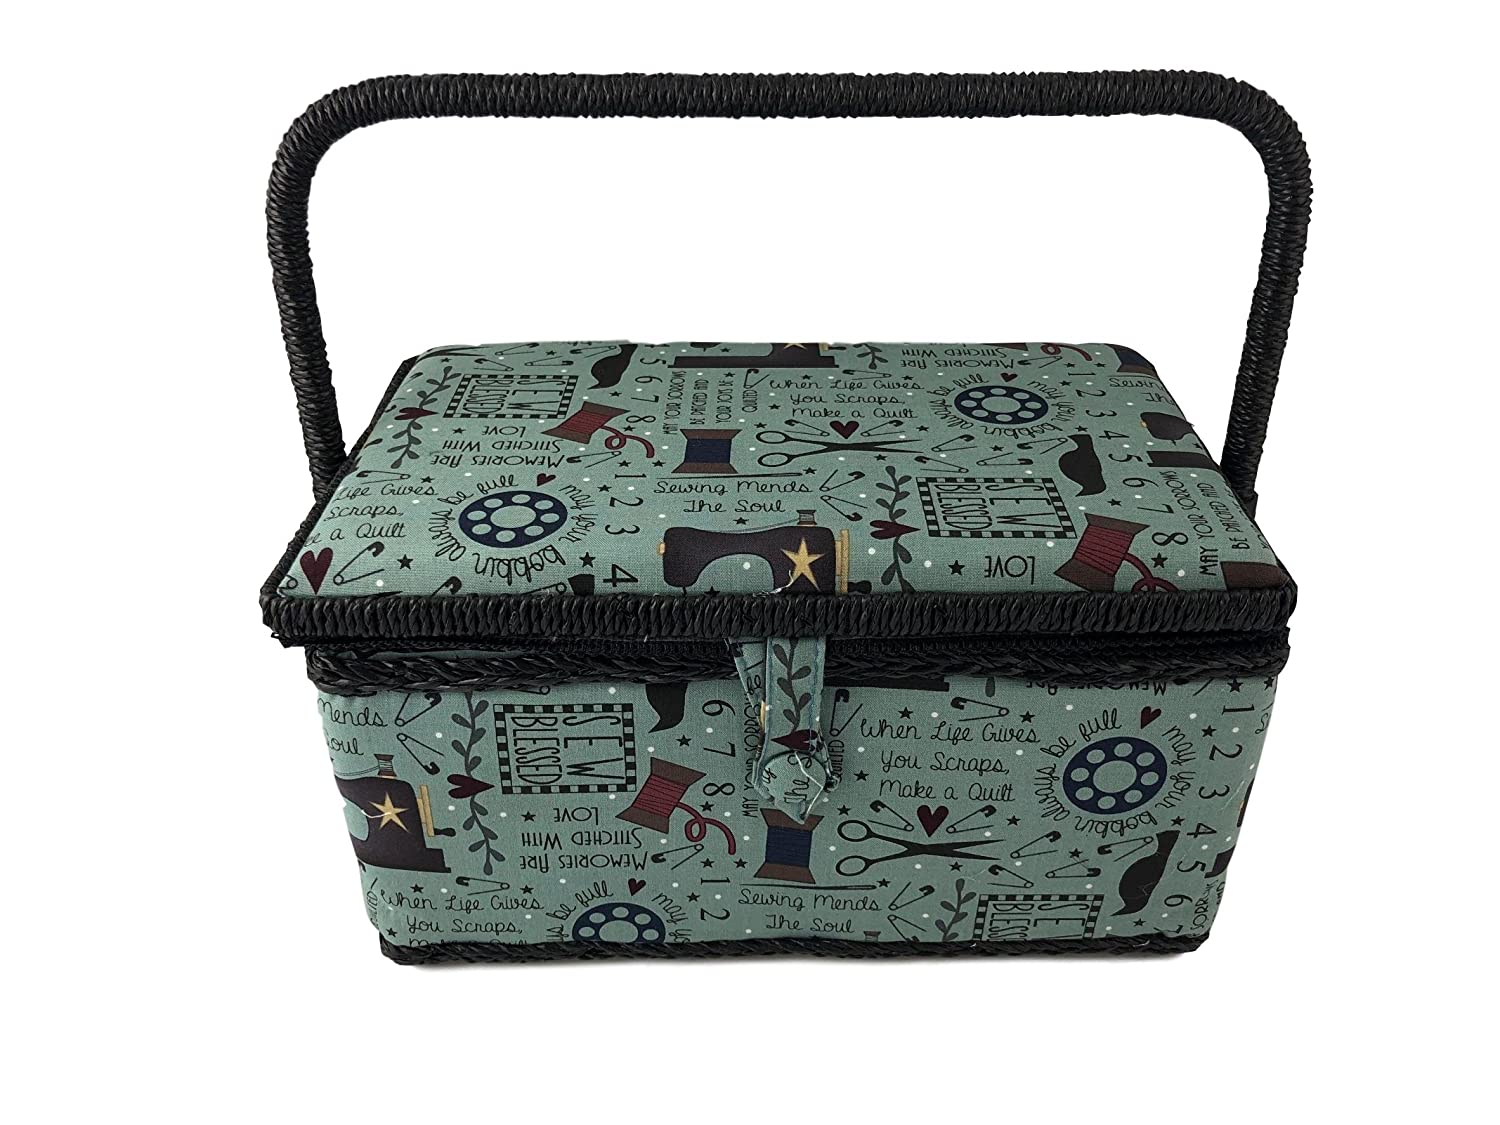 Medium Rectangle Sewing Basket Box with Tray Pincushion 11x7x6.5 (Medium 11x7x6.5, Black with Beige Butterflies) Allary